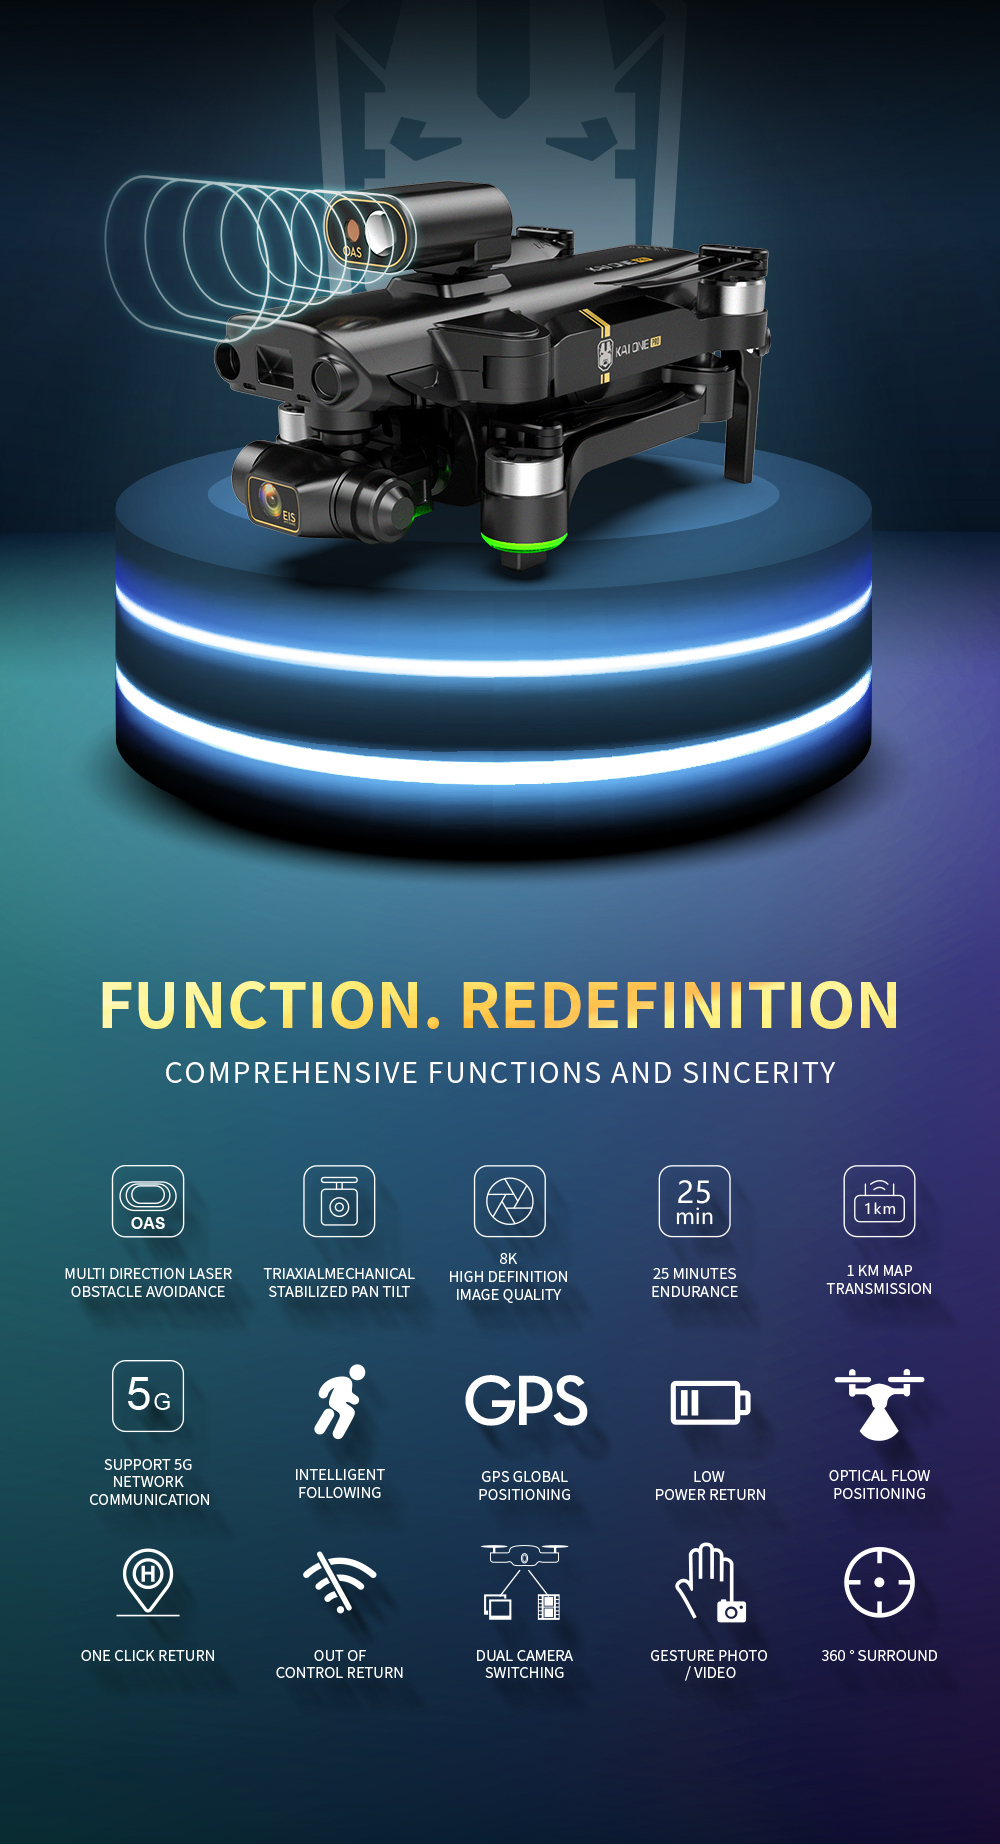 Hbc4e575d5d3d41a3b4a549b838d80119a - KAI ONE MAX GPS Drone 4K Camera 5G FPV WiFi Laser Obstacle Avoidance Altitude Hold Brushless RC Quadcopter Profesional Dron